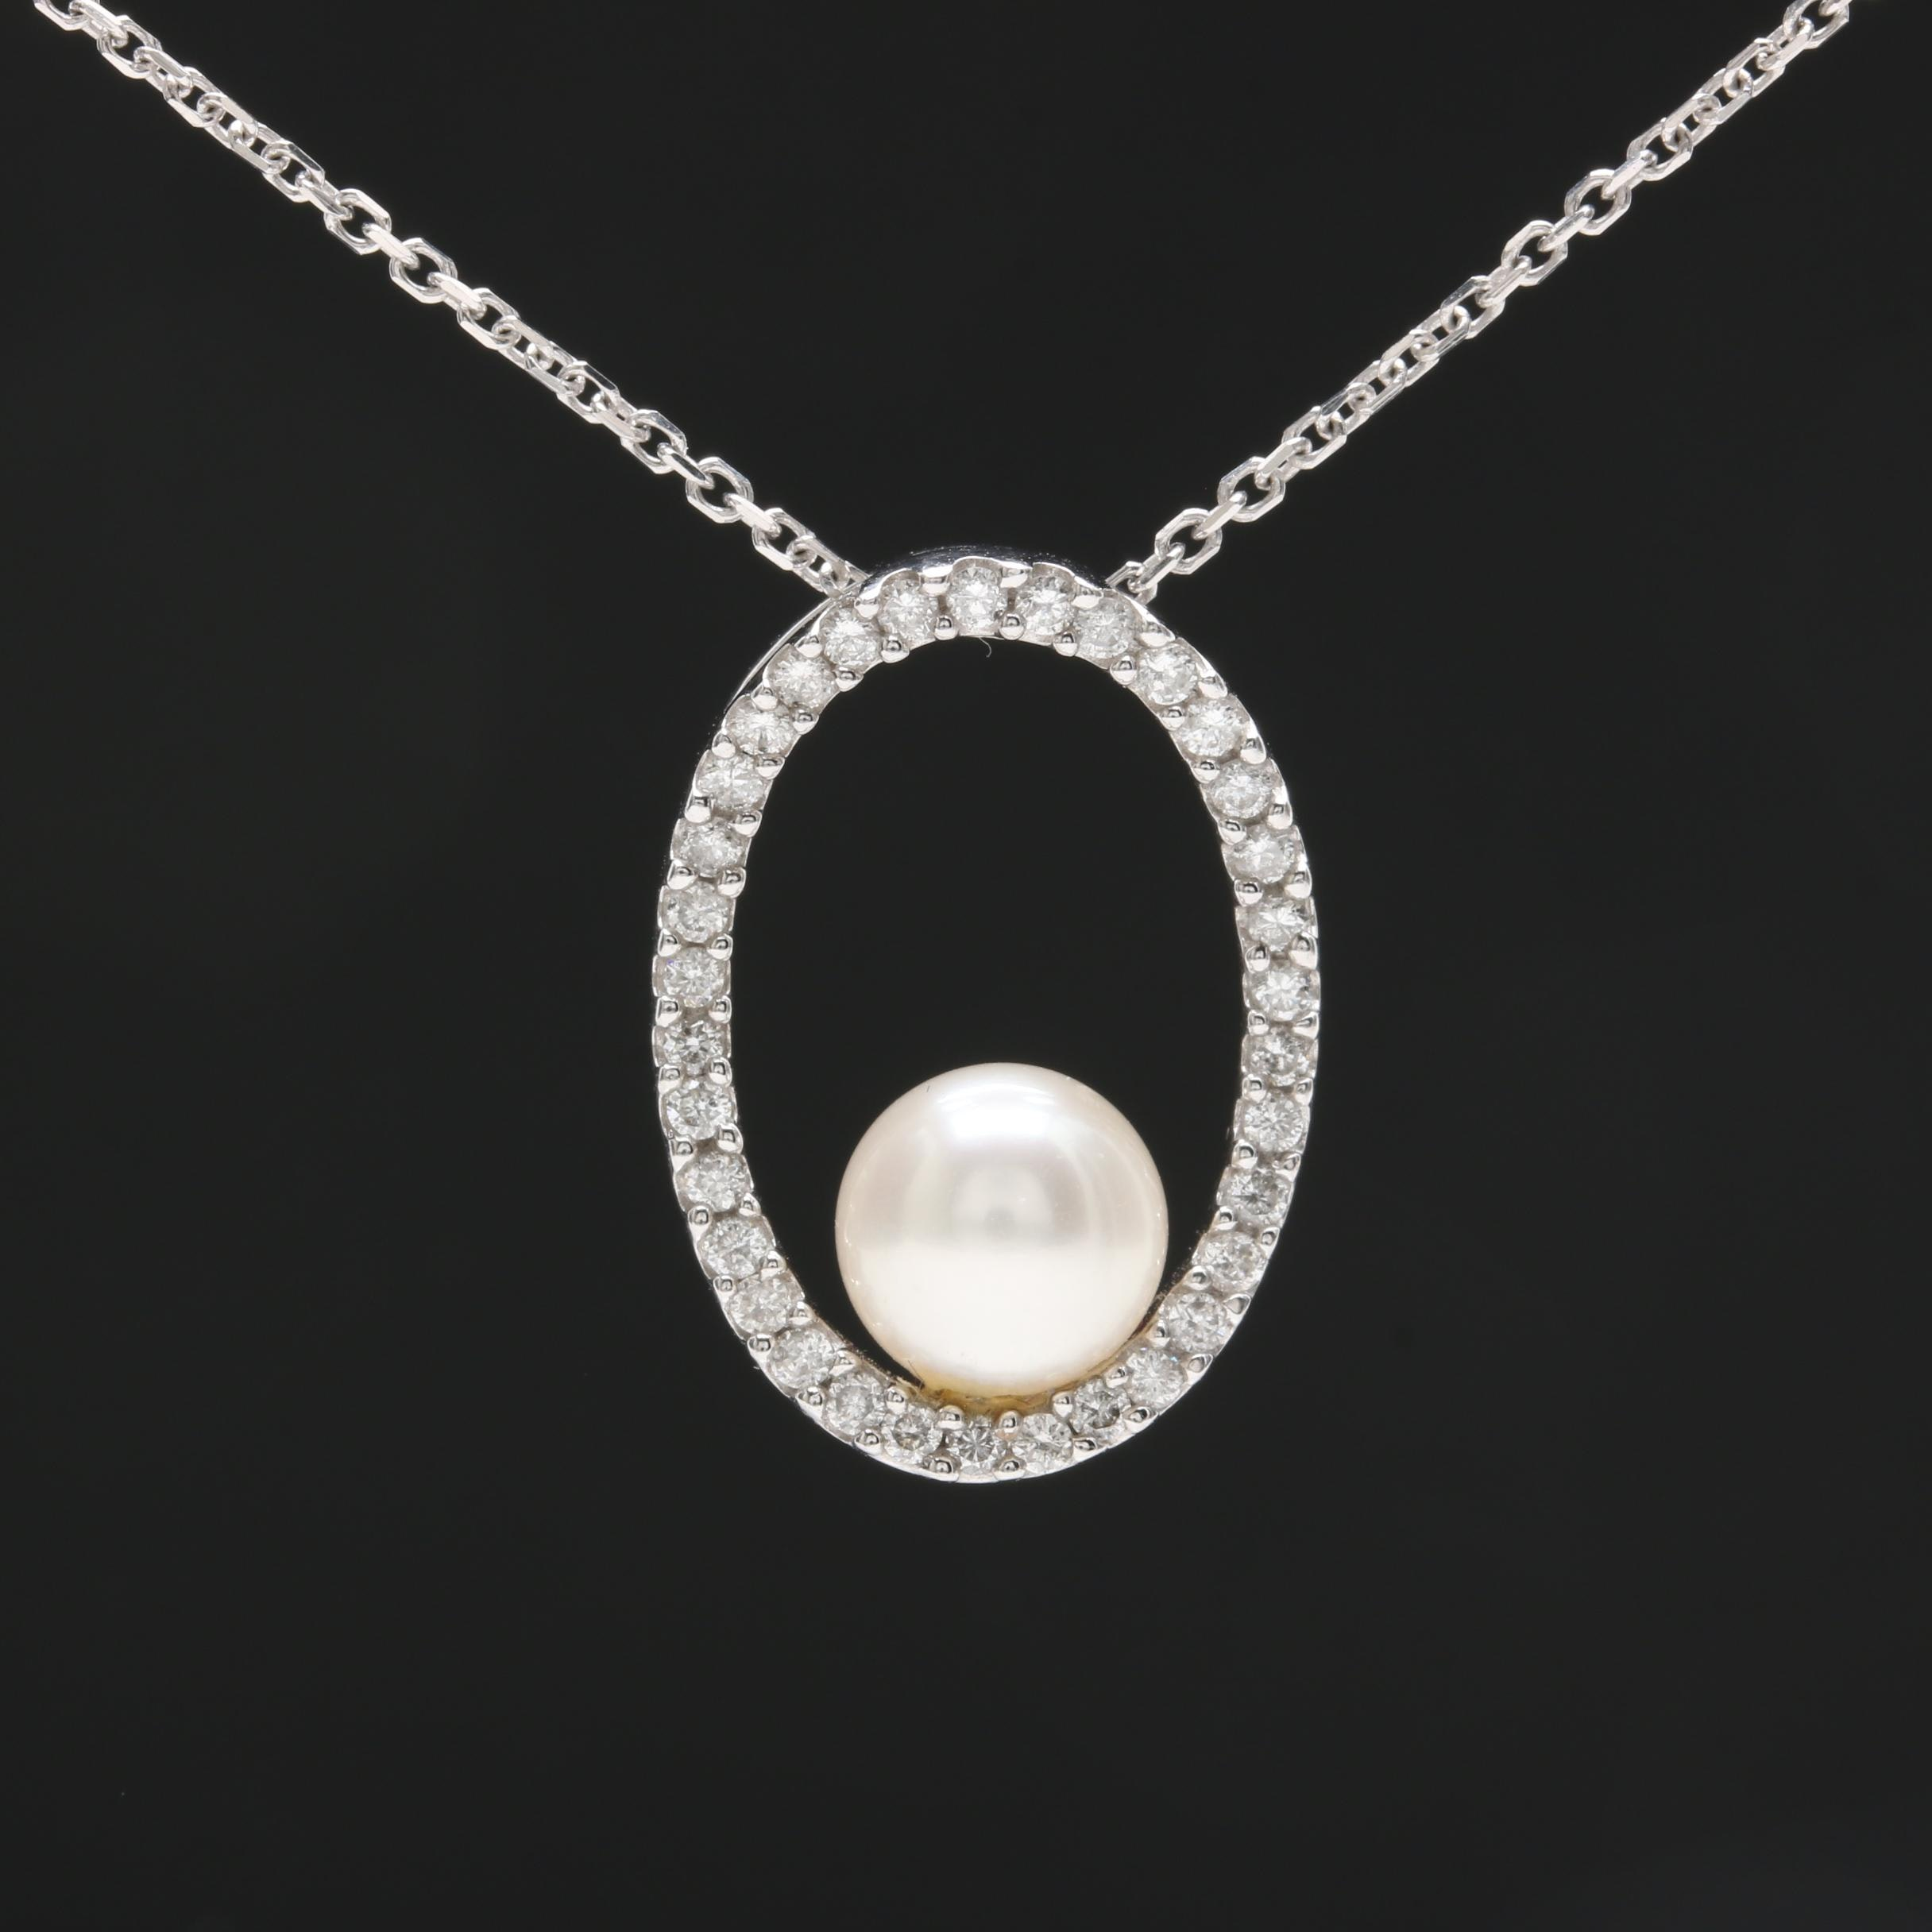 14K White Gold Necklace with Cultured Pearl and Diamond Necklace